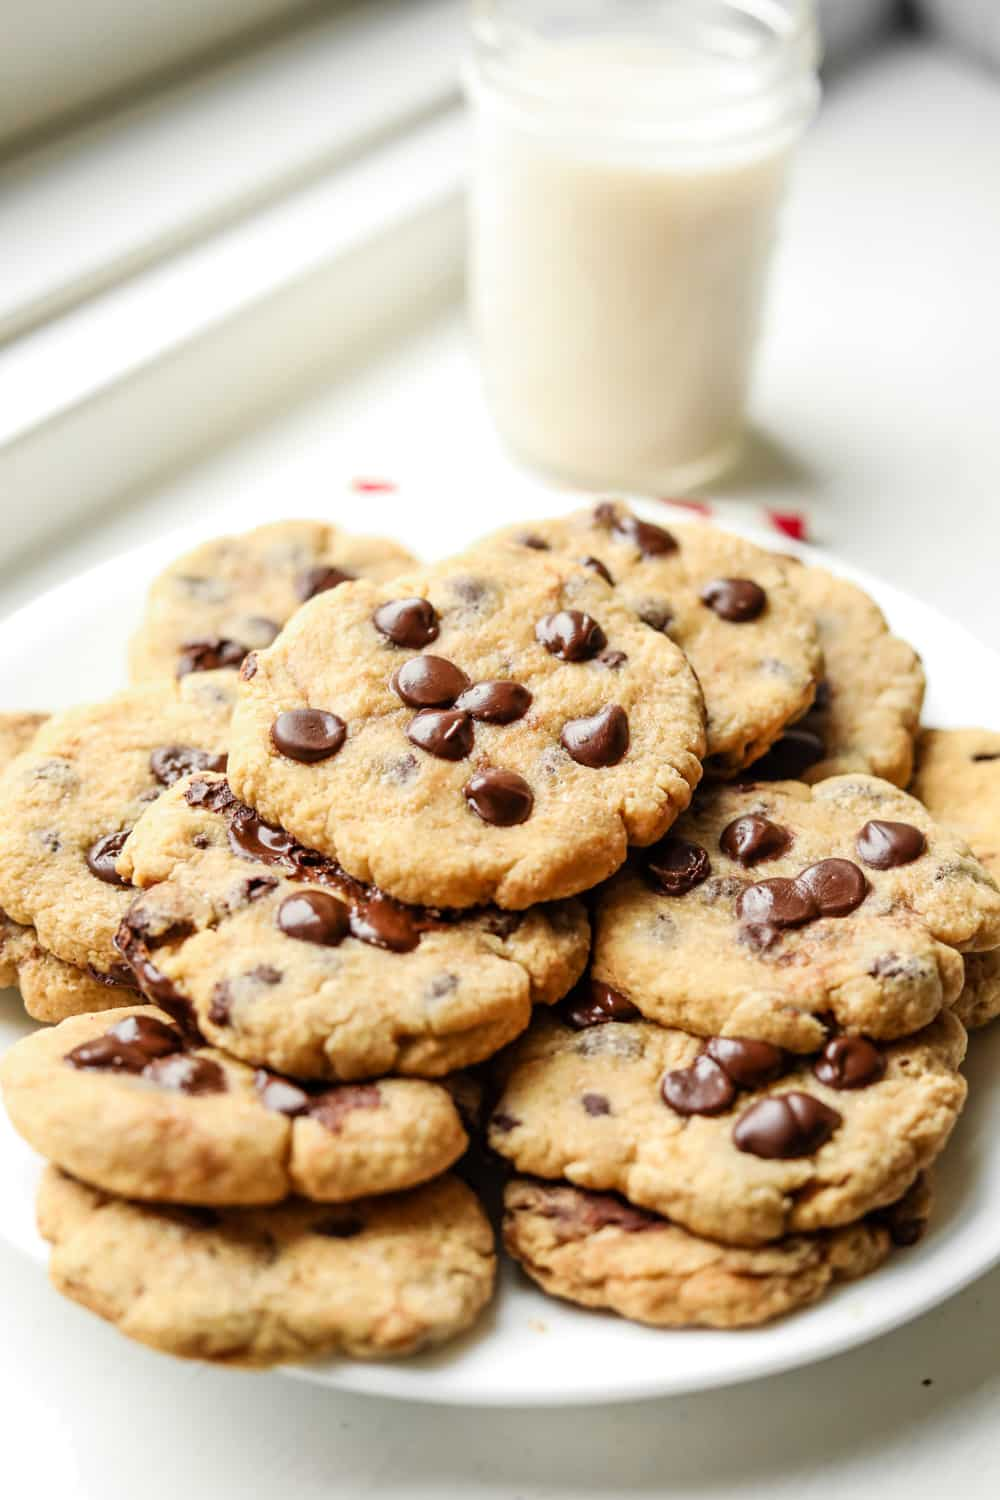 A plate of chocolate chip cookies with a glass of milk set behind the plate.